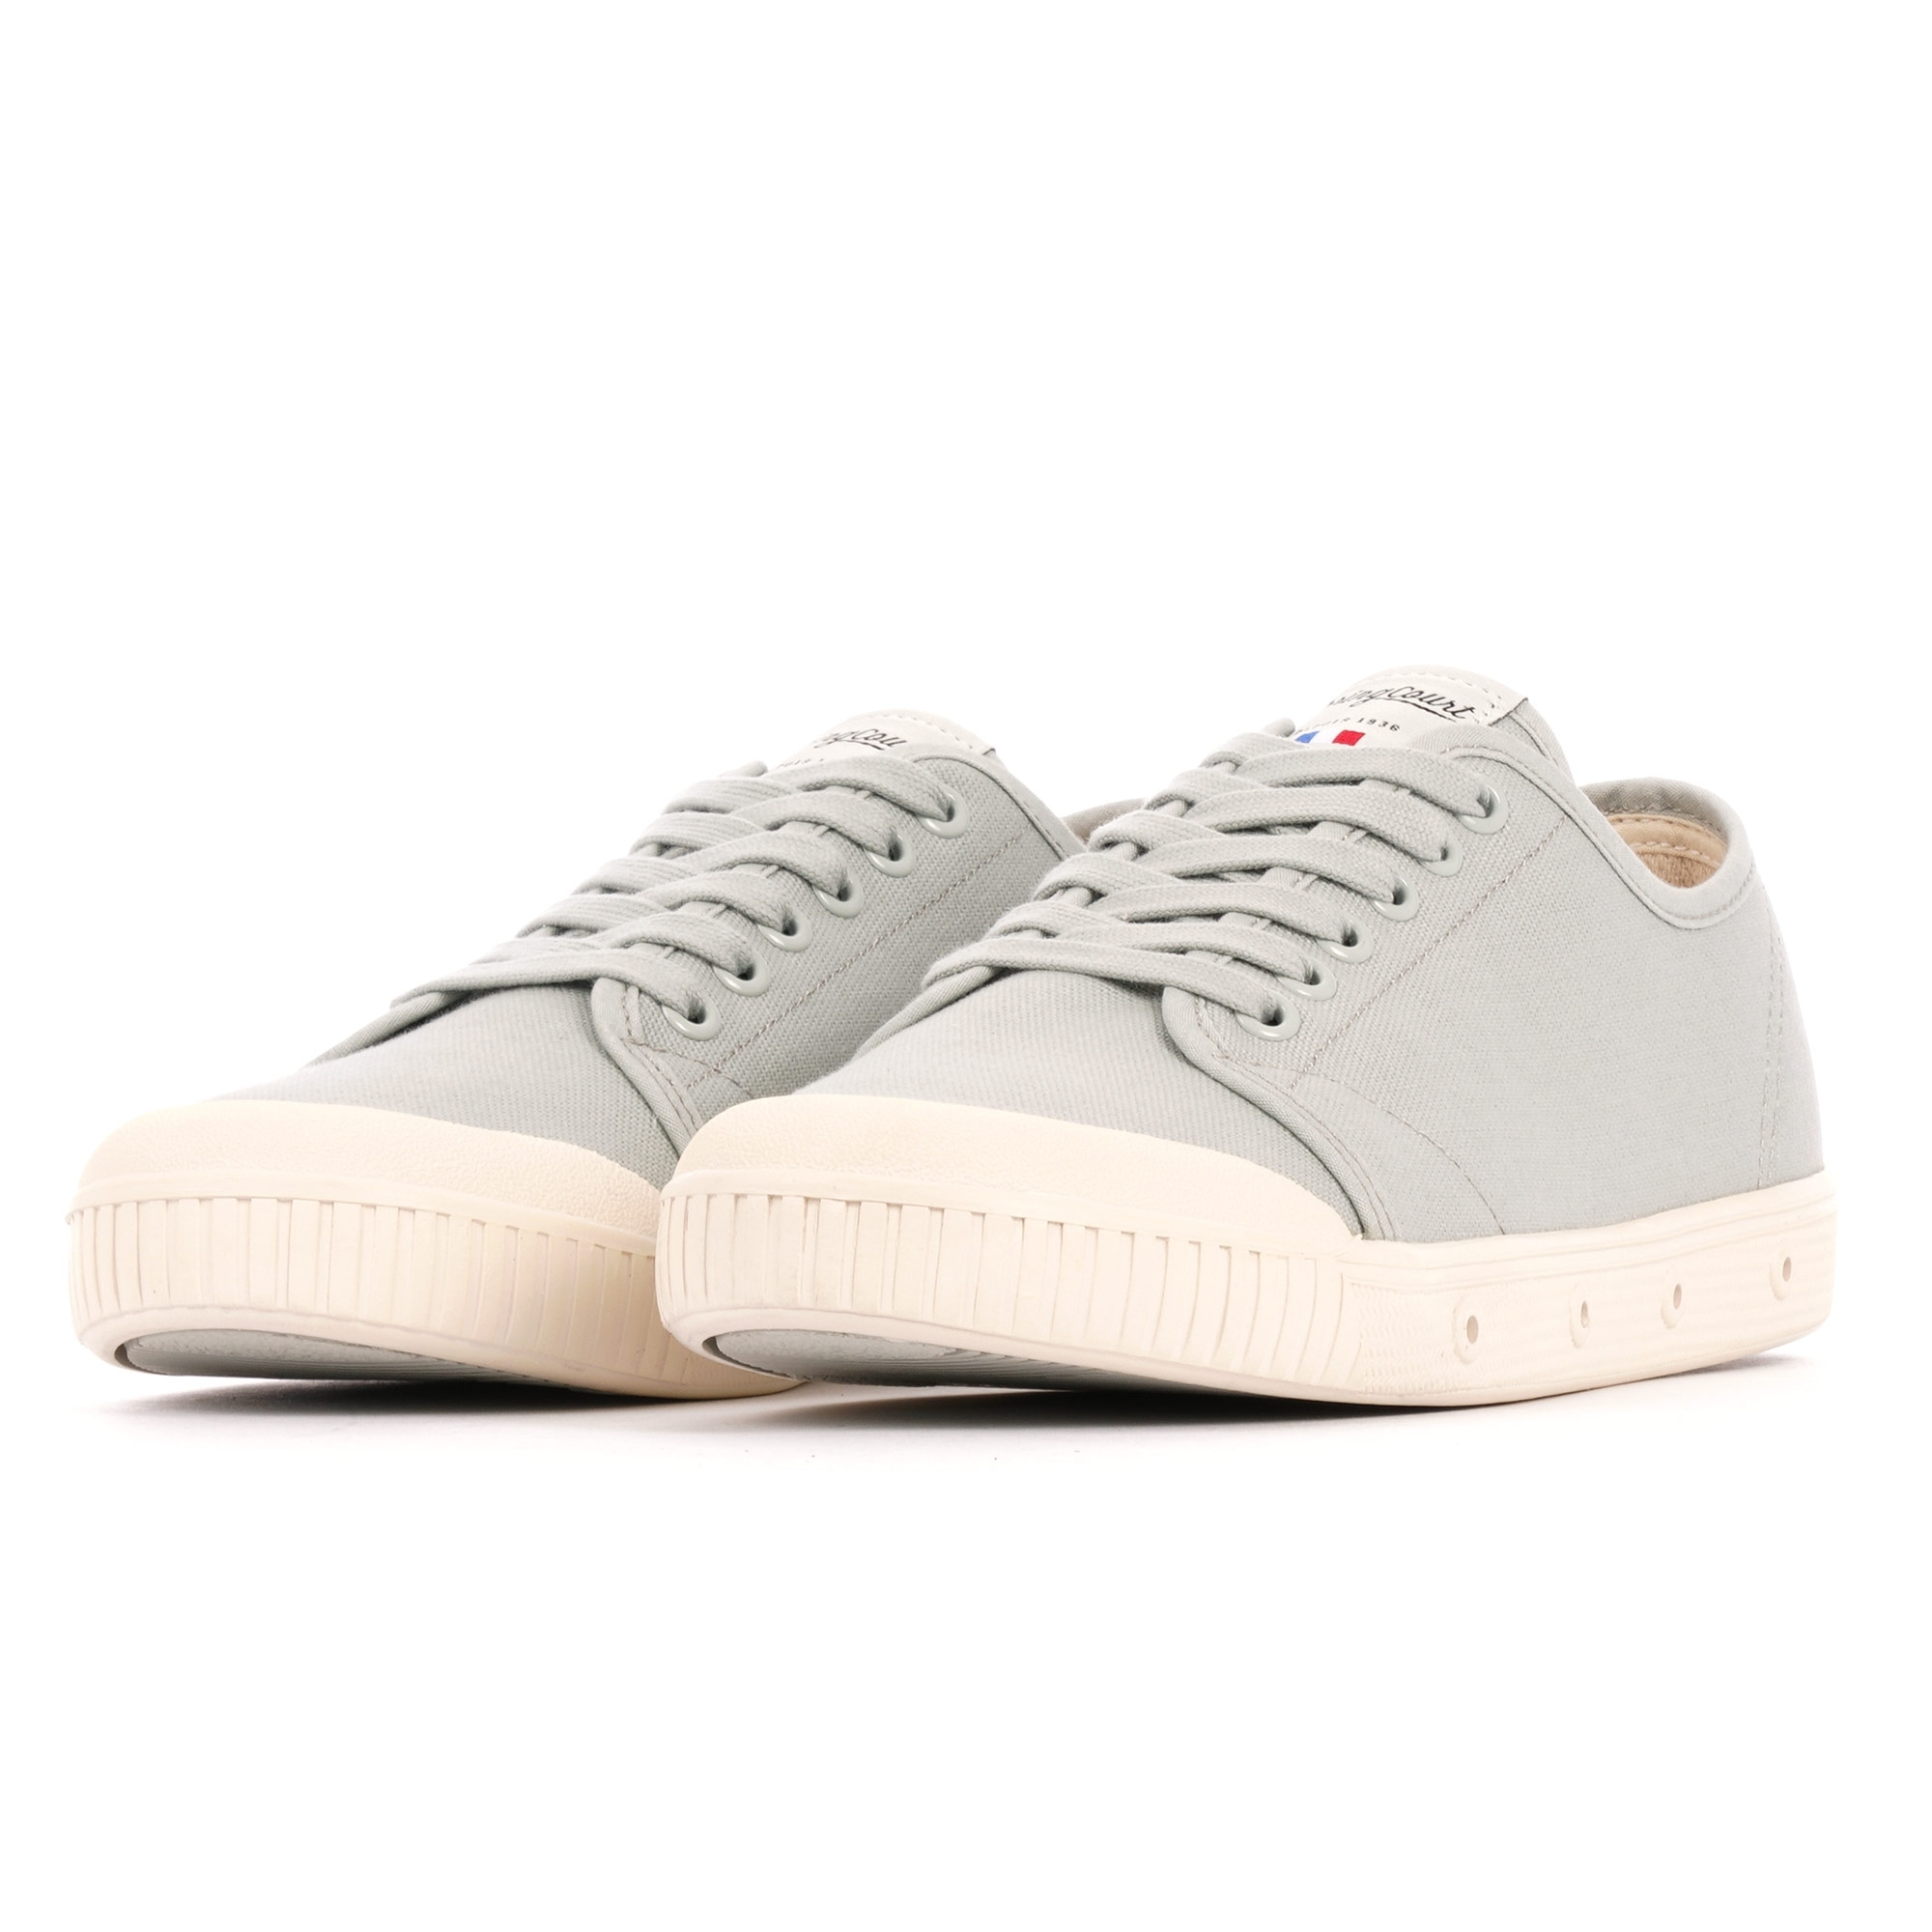 uk availability 0528c 72e1a G2 Vintage Cotton Canvas Shoes - Ash Grey